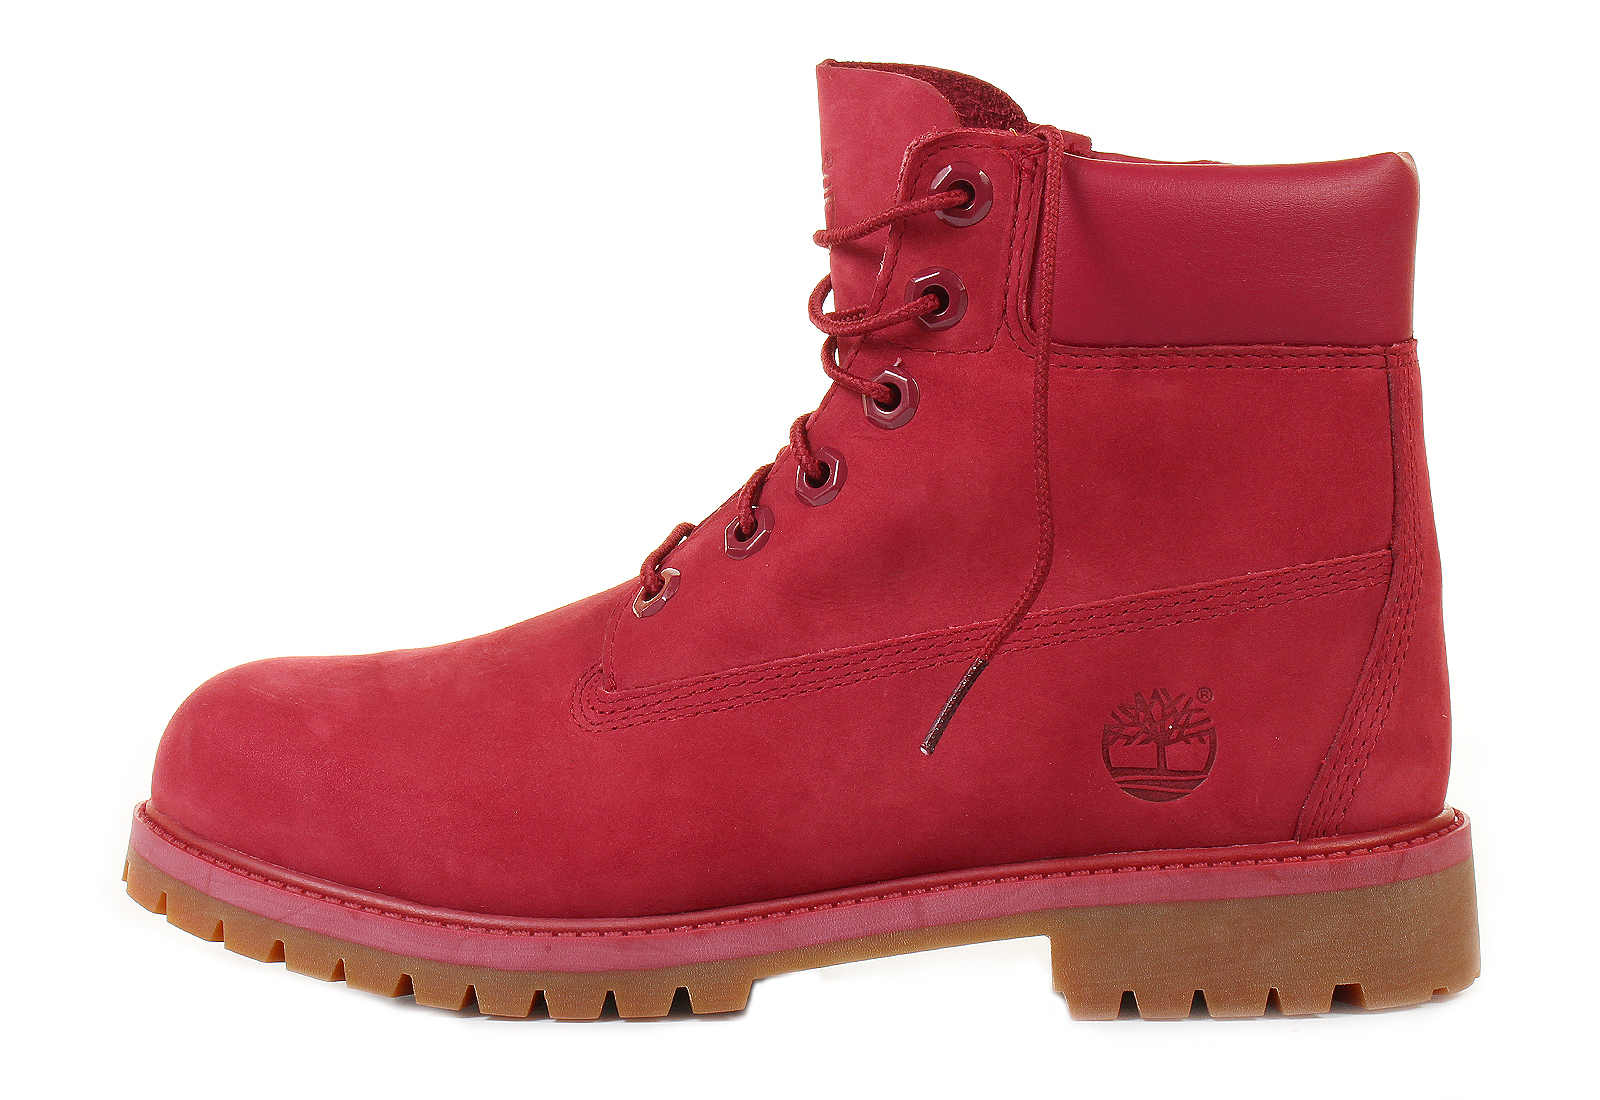 Timberland Boots - 6 Inch Prem Boot - a13hv-red - Online ...